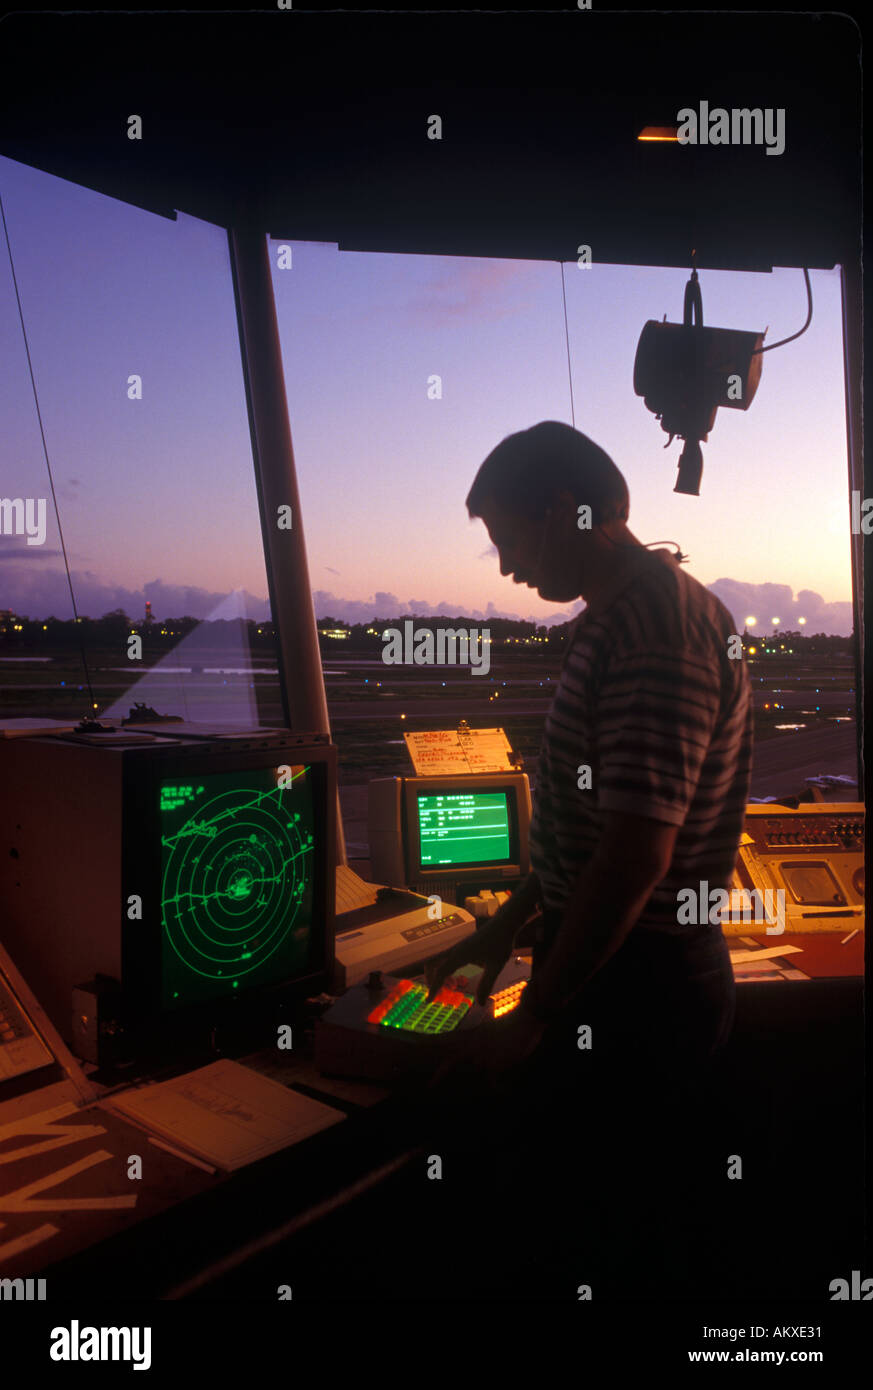 Air traffic controller in control tower - Stock Image